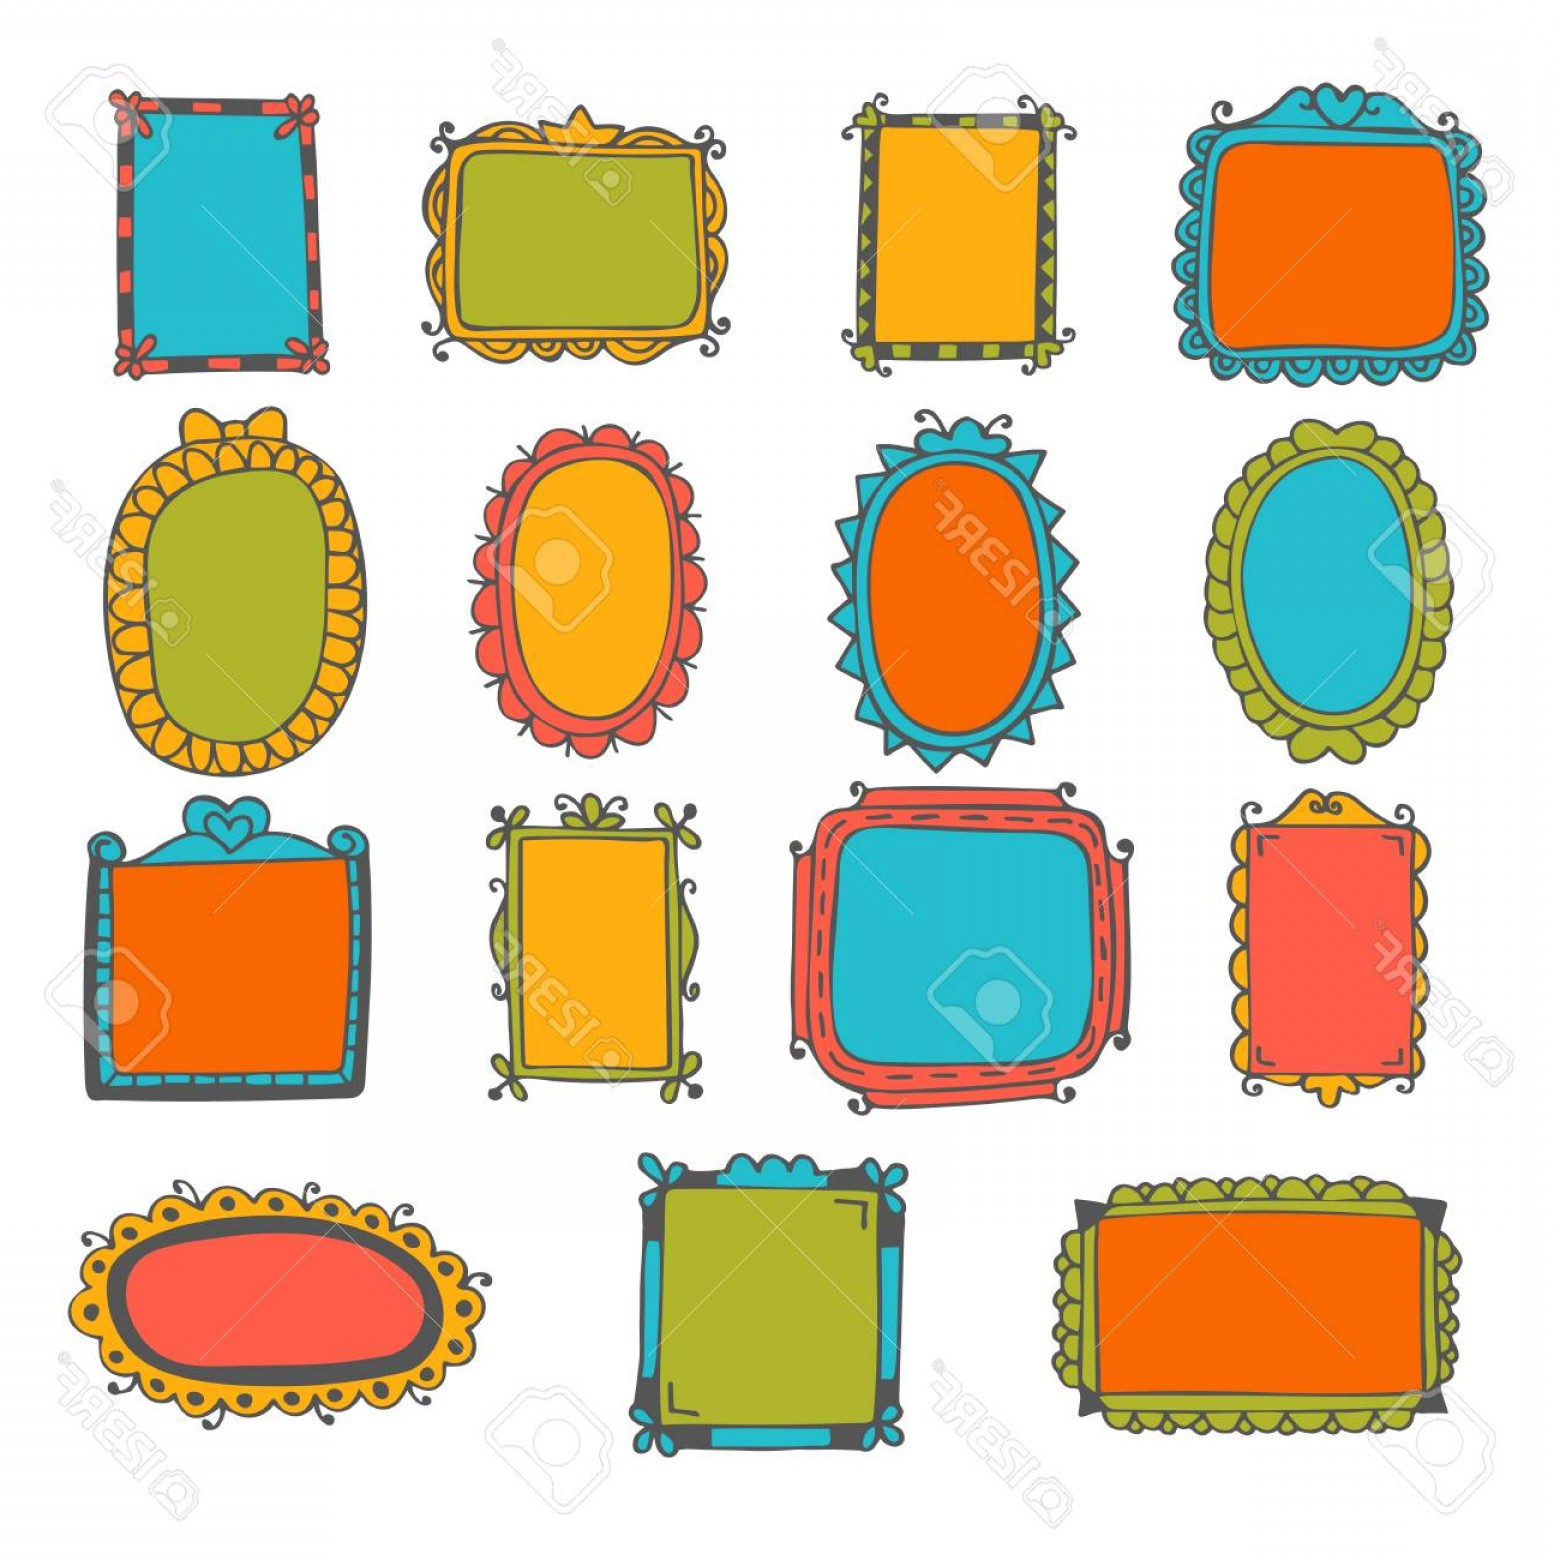 Cute Design Elements Vector Set: Photostock Vector Set Of Hand Drawn Frames Cute Design Elements Sketchy Frames And Borders Vector Illustration